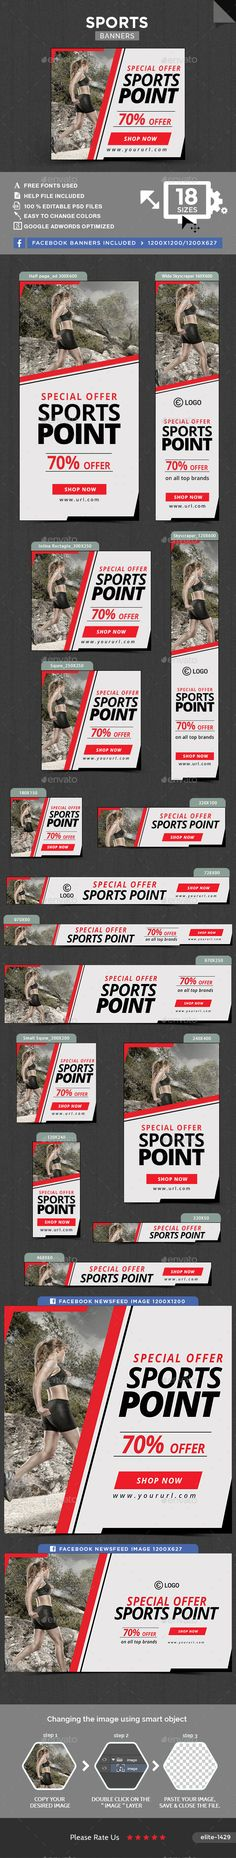 Sports Banners Template PSD. Download here: http://graphicriver.net/item/sports-banners/15930049?ref=ksioks